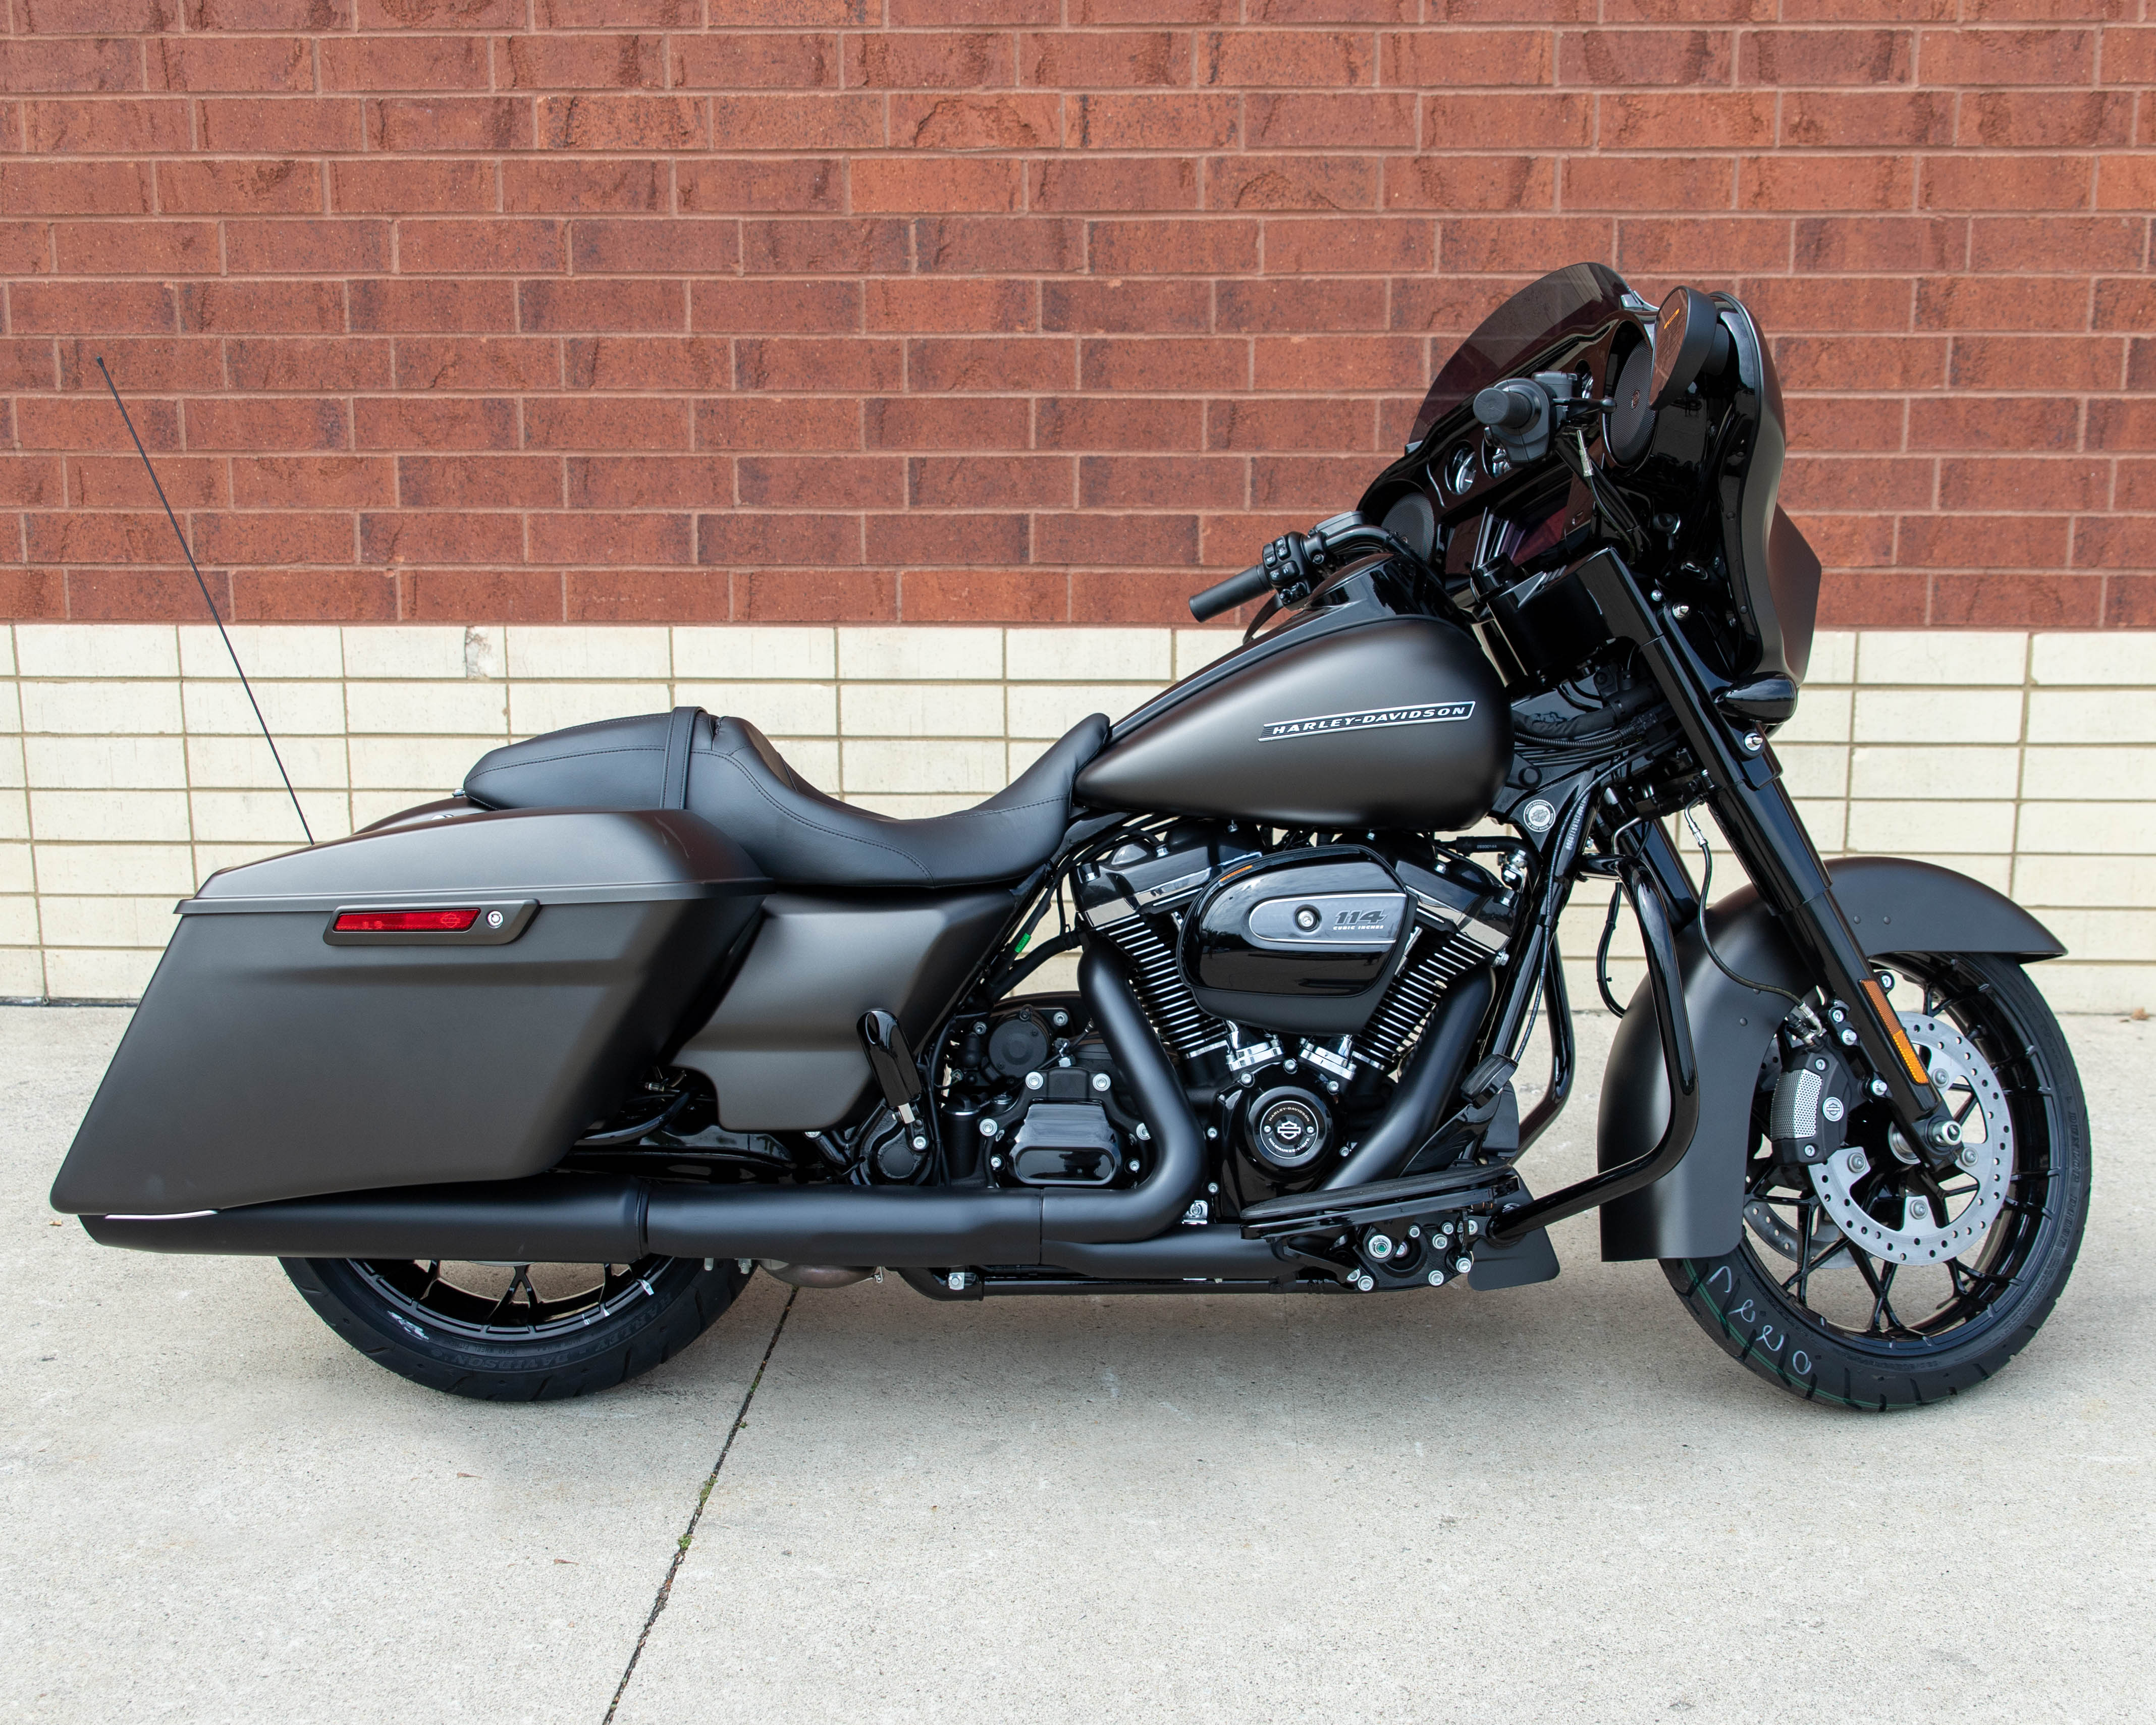 Tremendous New 2020 Harley Davidson Street Glide Special In Fort Wayne Unemploymentrelief Wooden Chair Designs For Living Room Unemploymentrelieforg